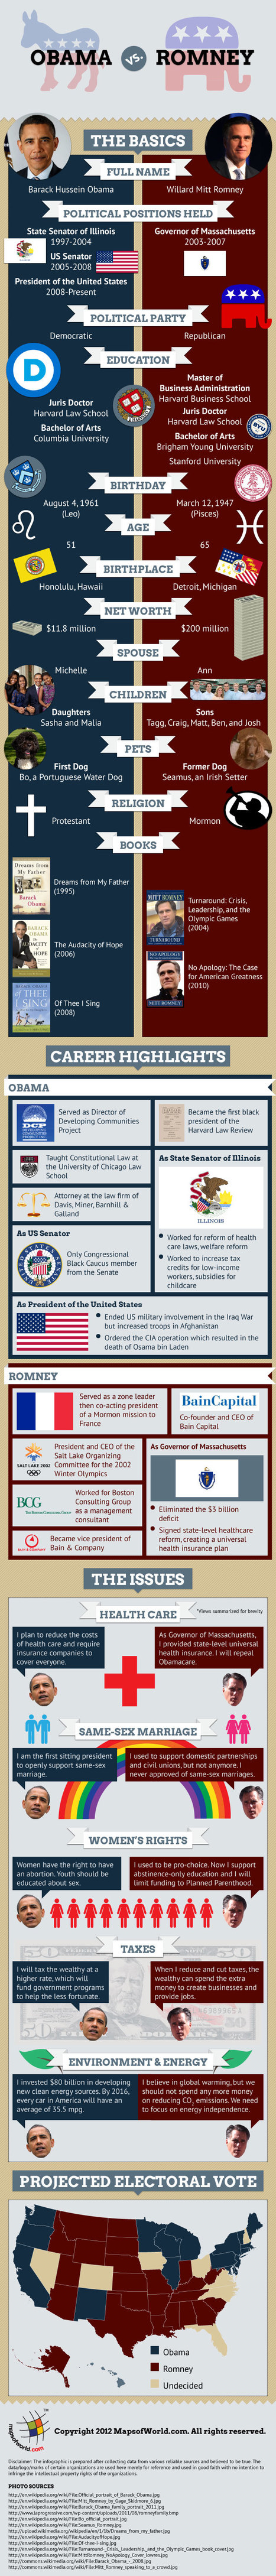 OBAMA vs ROMNEY - Who's gonna be the winner? | Current Updates | Scoop.it